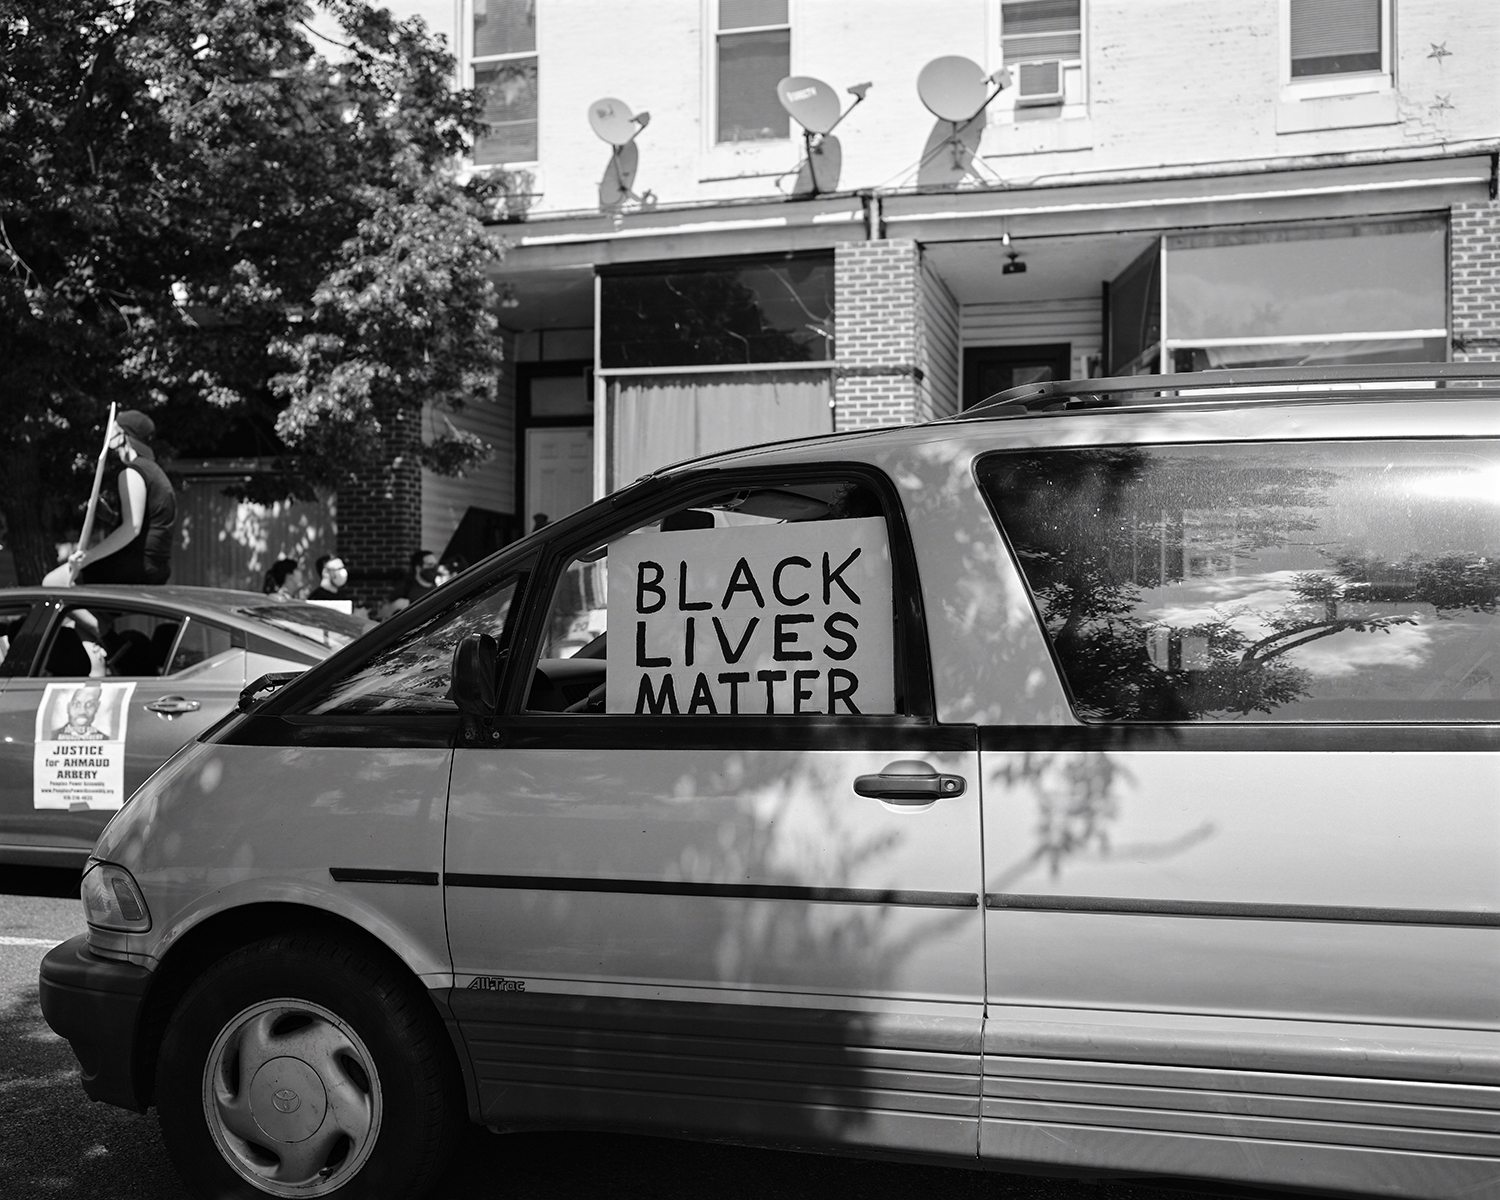 Blm Peaceful Protests1 Size